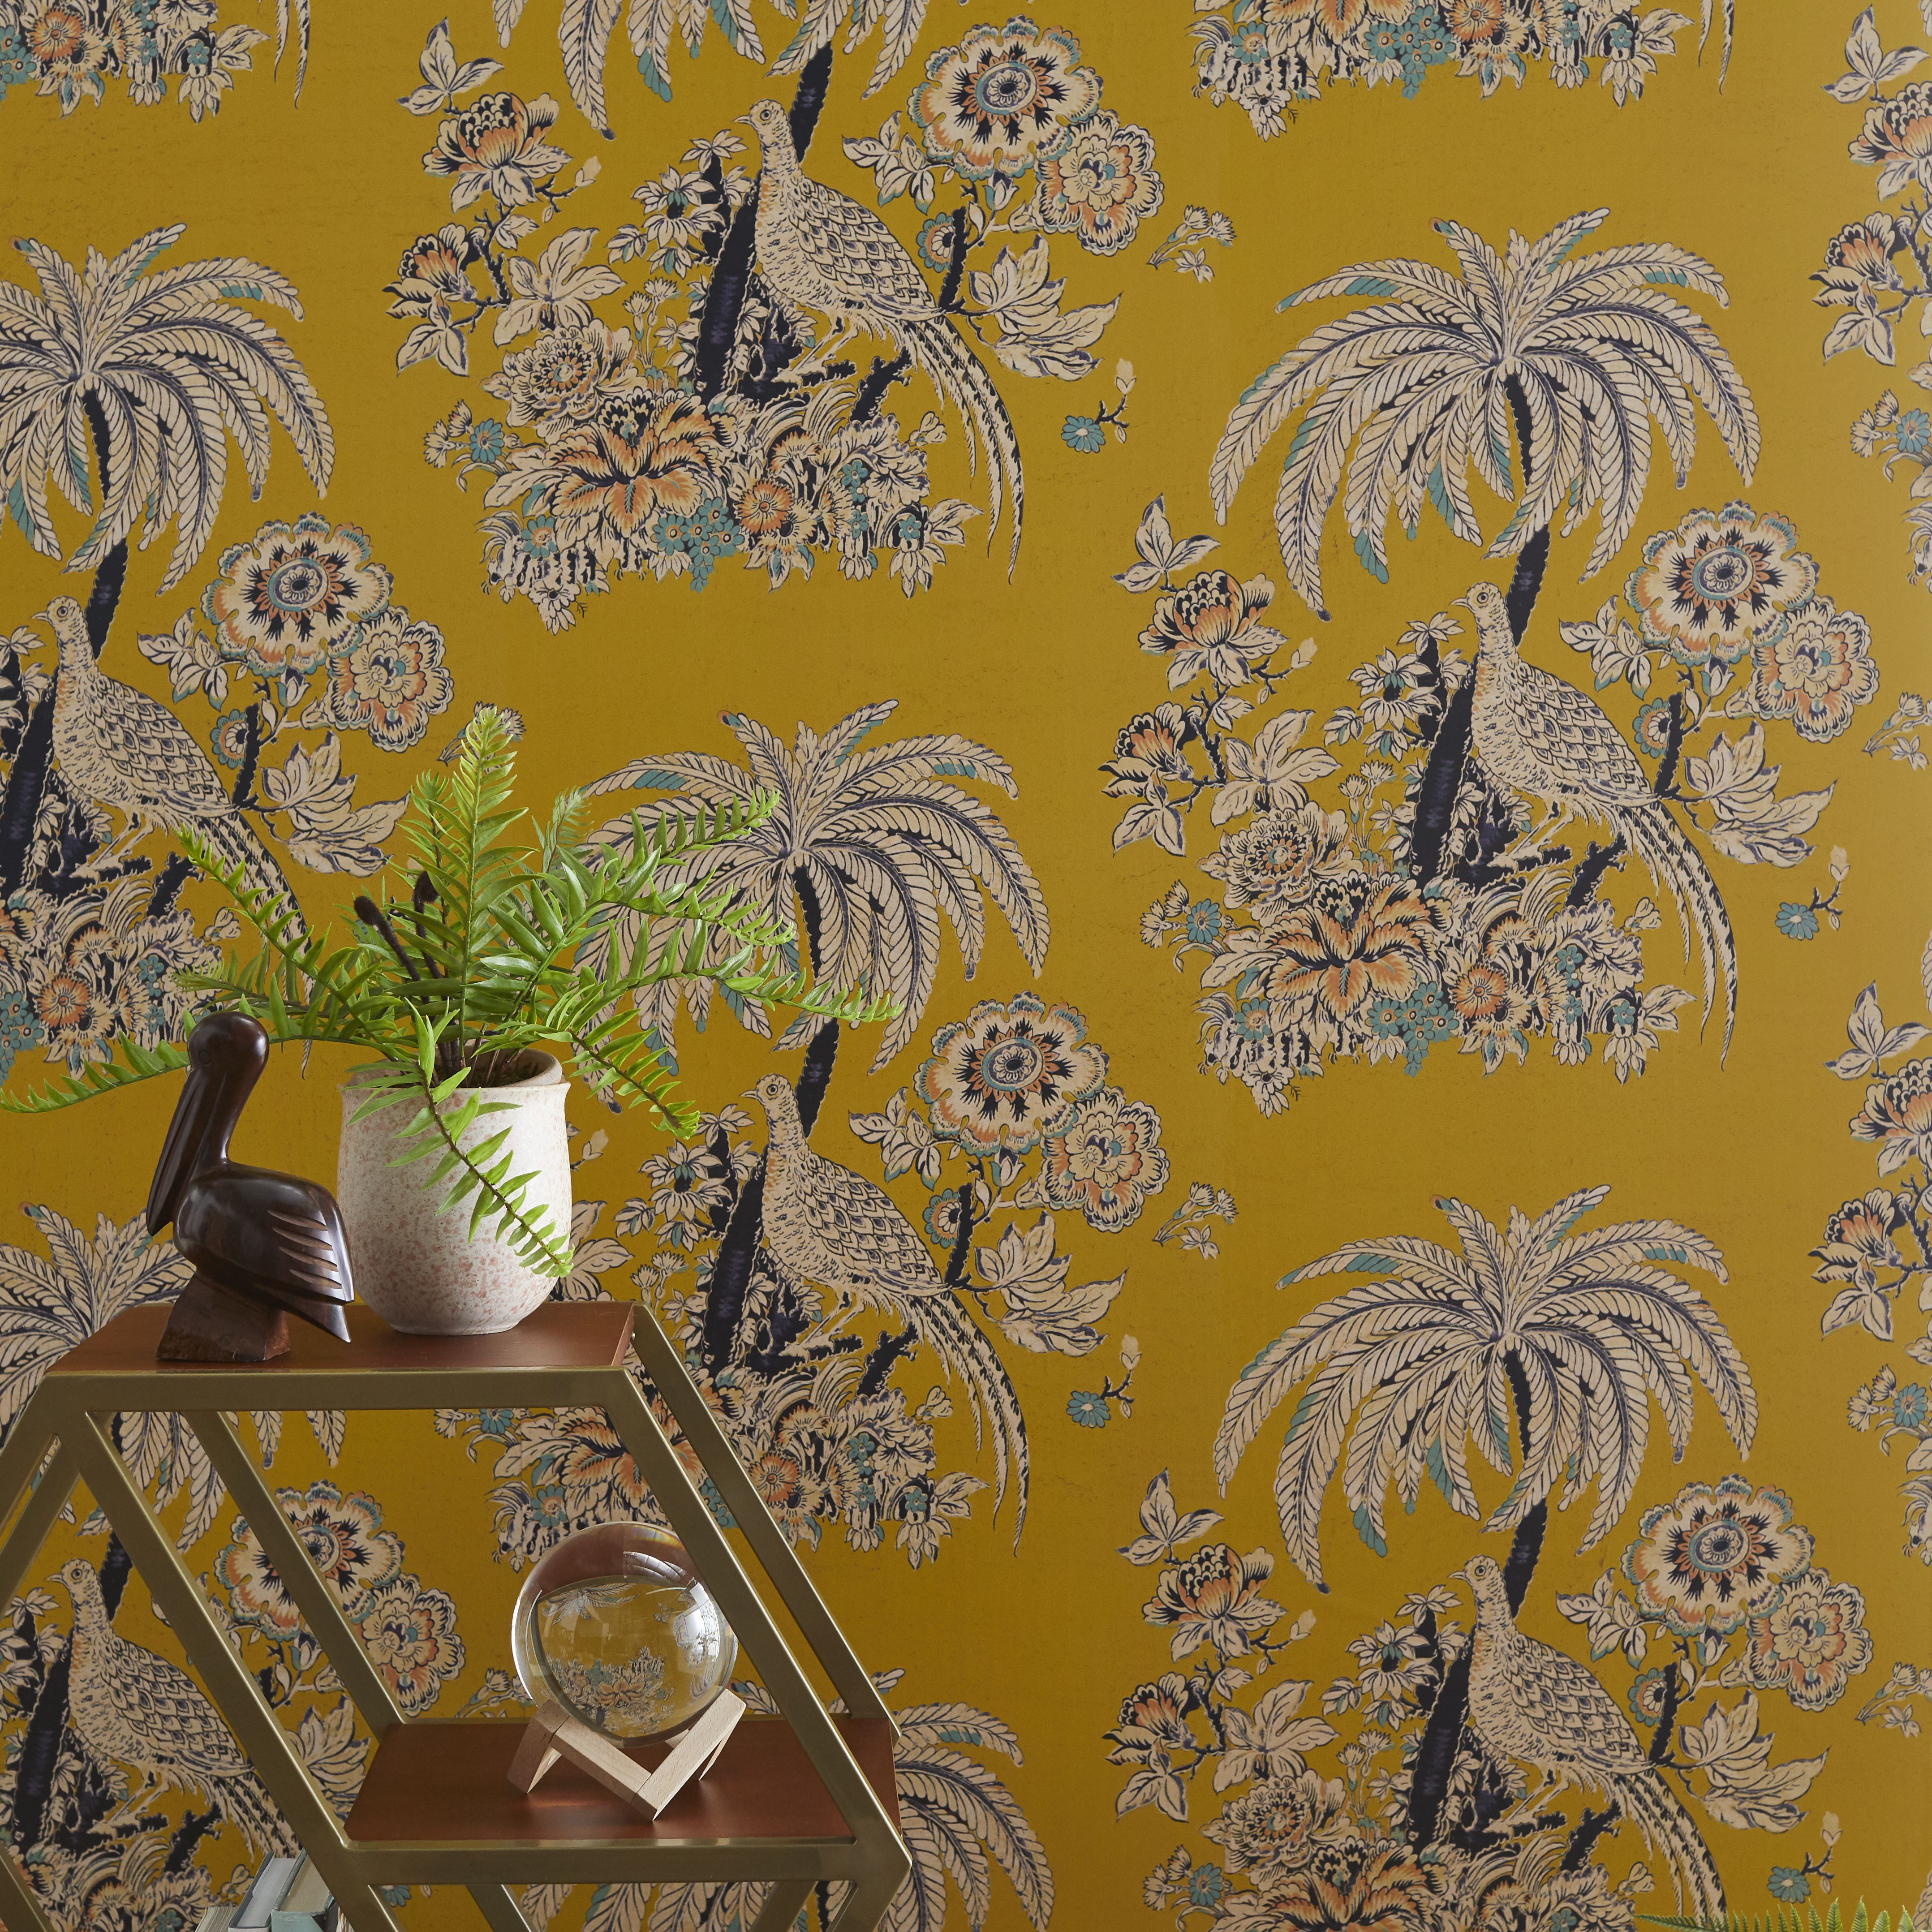 Tropical Toile Peel And Stick Wallpaper By Drew Barrymore Flower Home Yellow Walmart Com Peel And Stick Wallpaper Wallpaper Vinyl Wallpaper